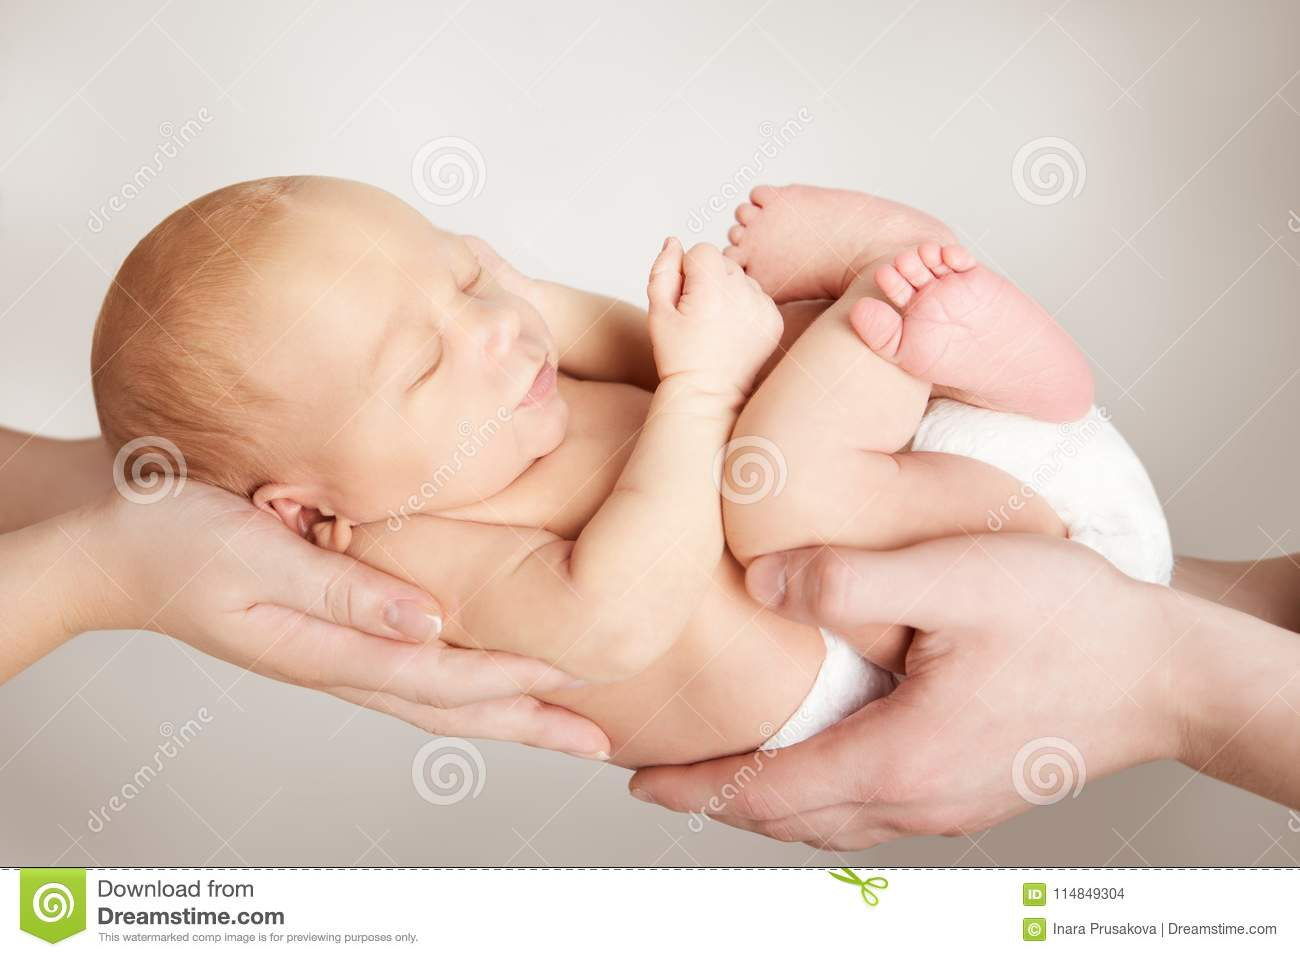 Newborn Baby and Family Concept, Parents Holding New Born Child